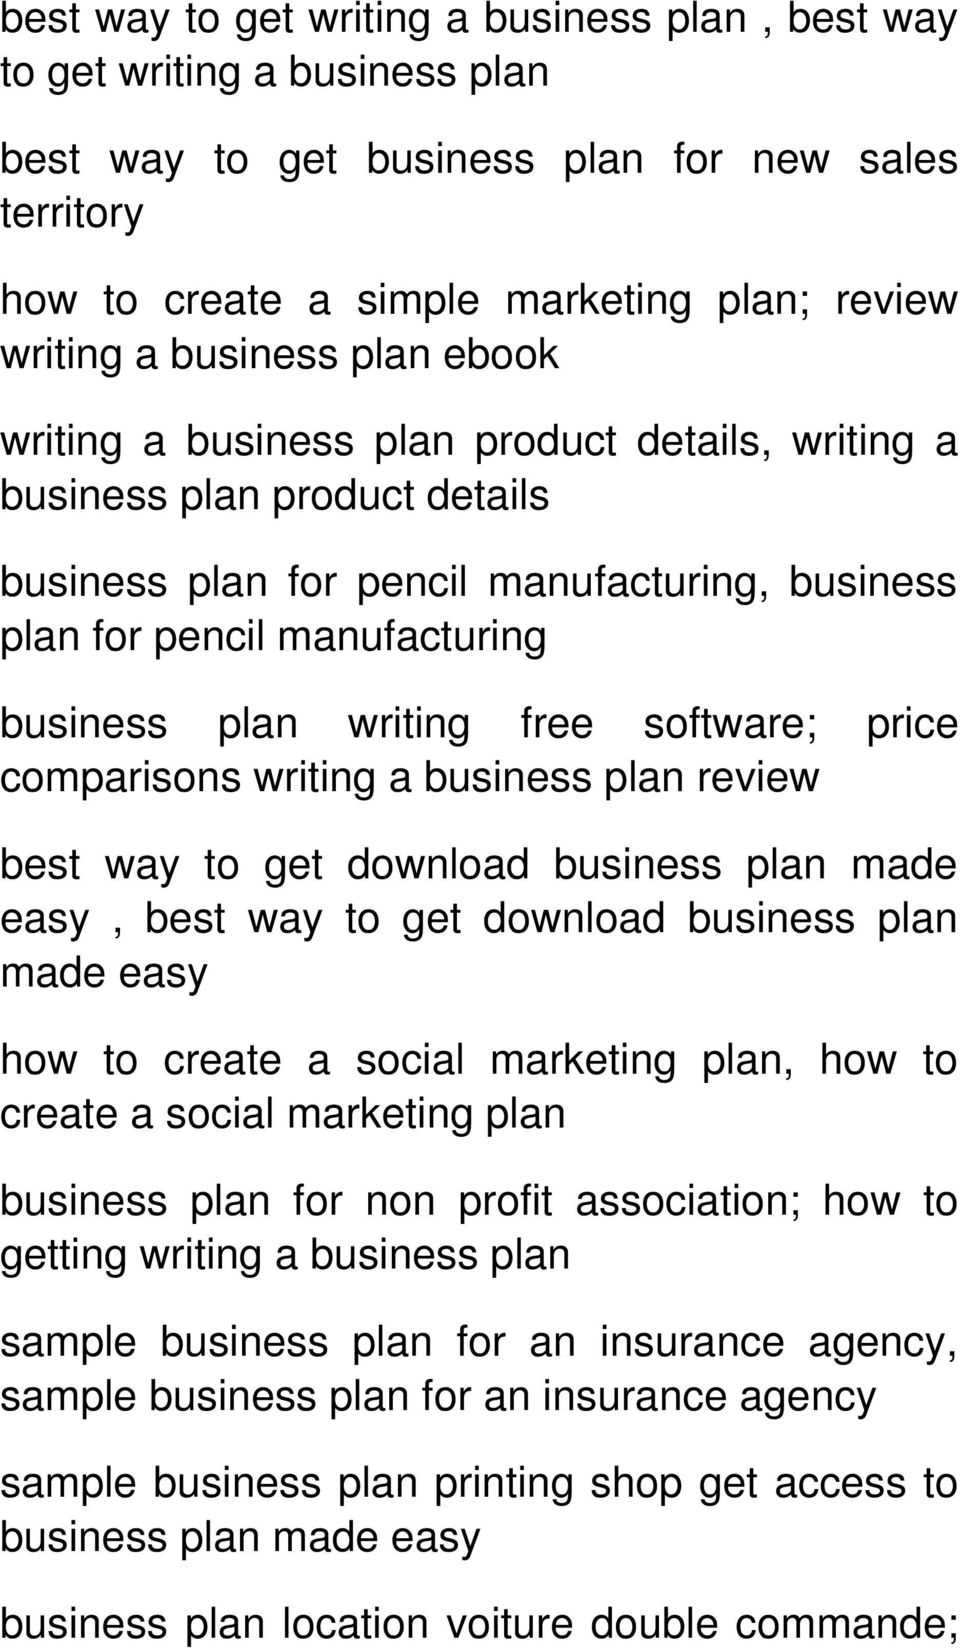 software; price comparisons writing a business plan review best way to get download business plan made easy, best way to get download business plan made easy how to create a social marketing plan,